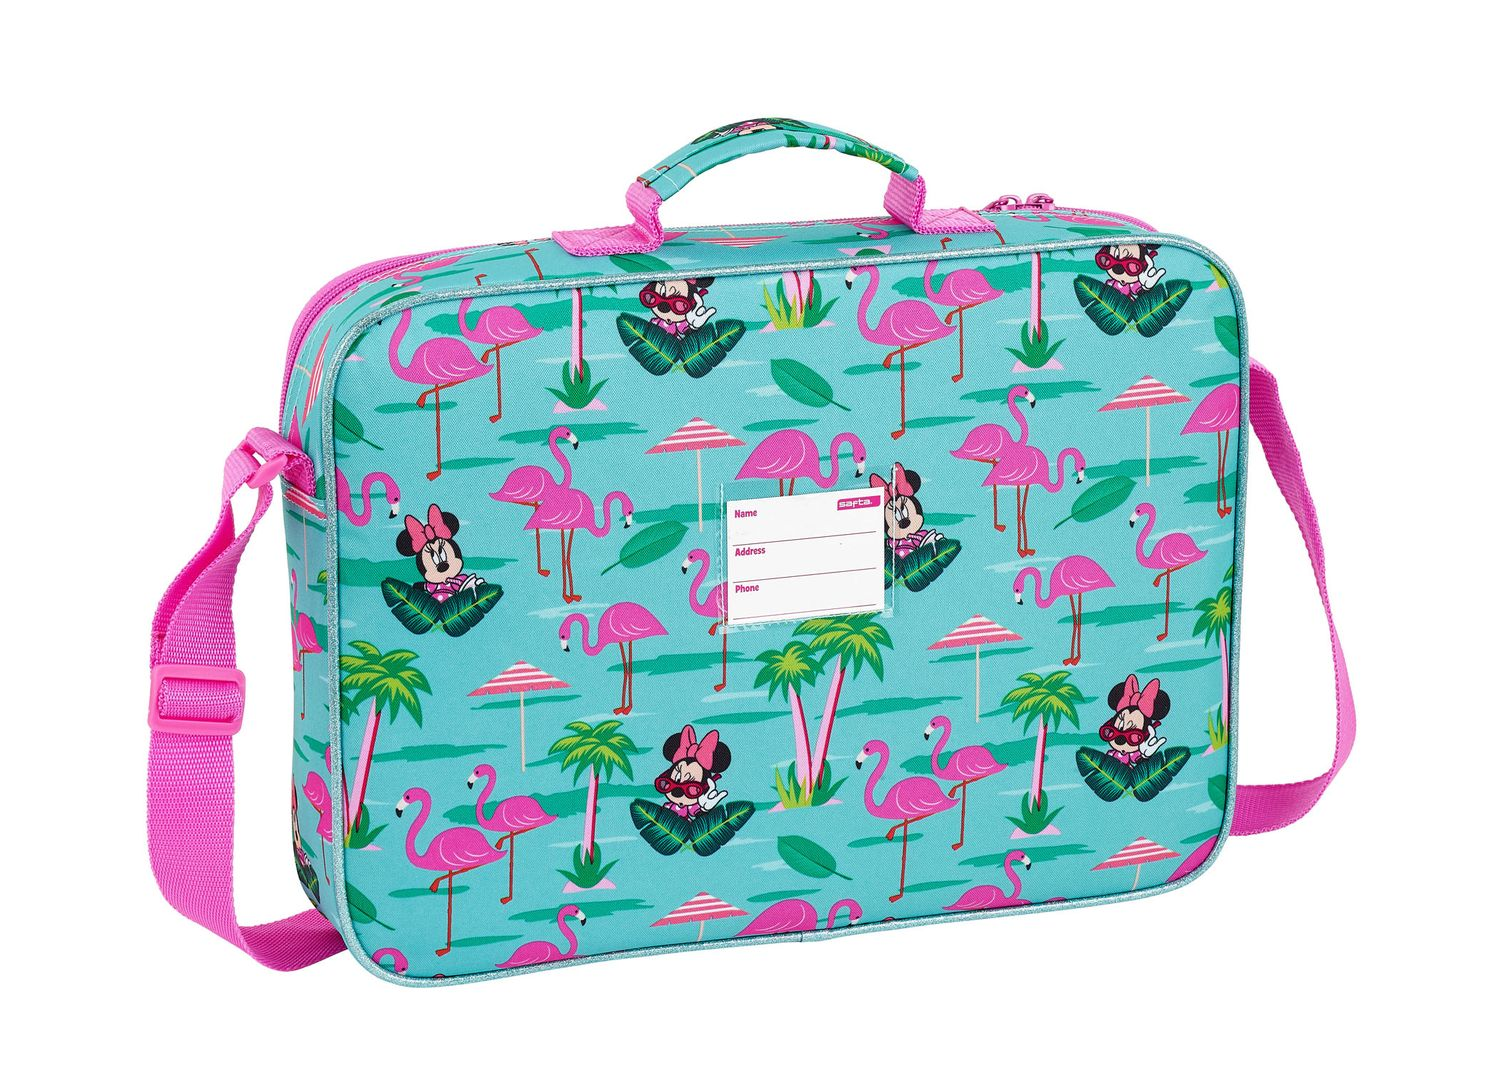 Minnie Mouse Spring Palms Briefcase Shoulder Bag 38cm – image 2